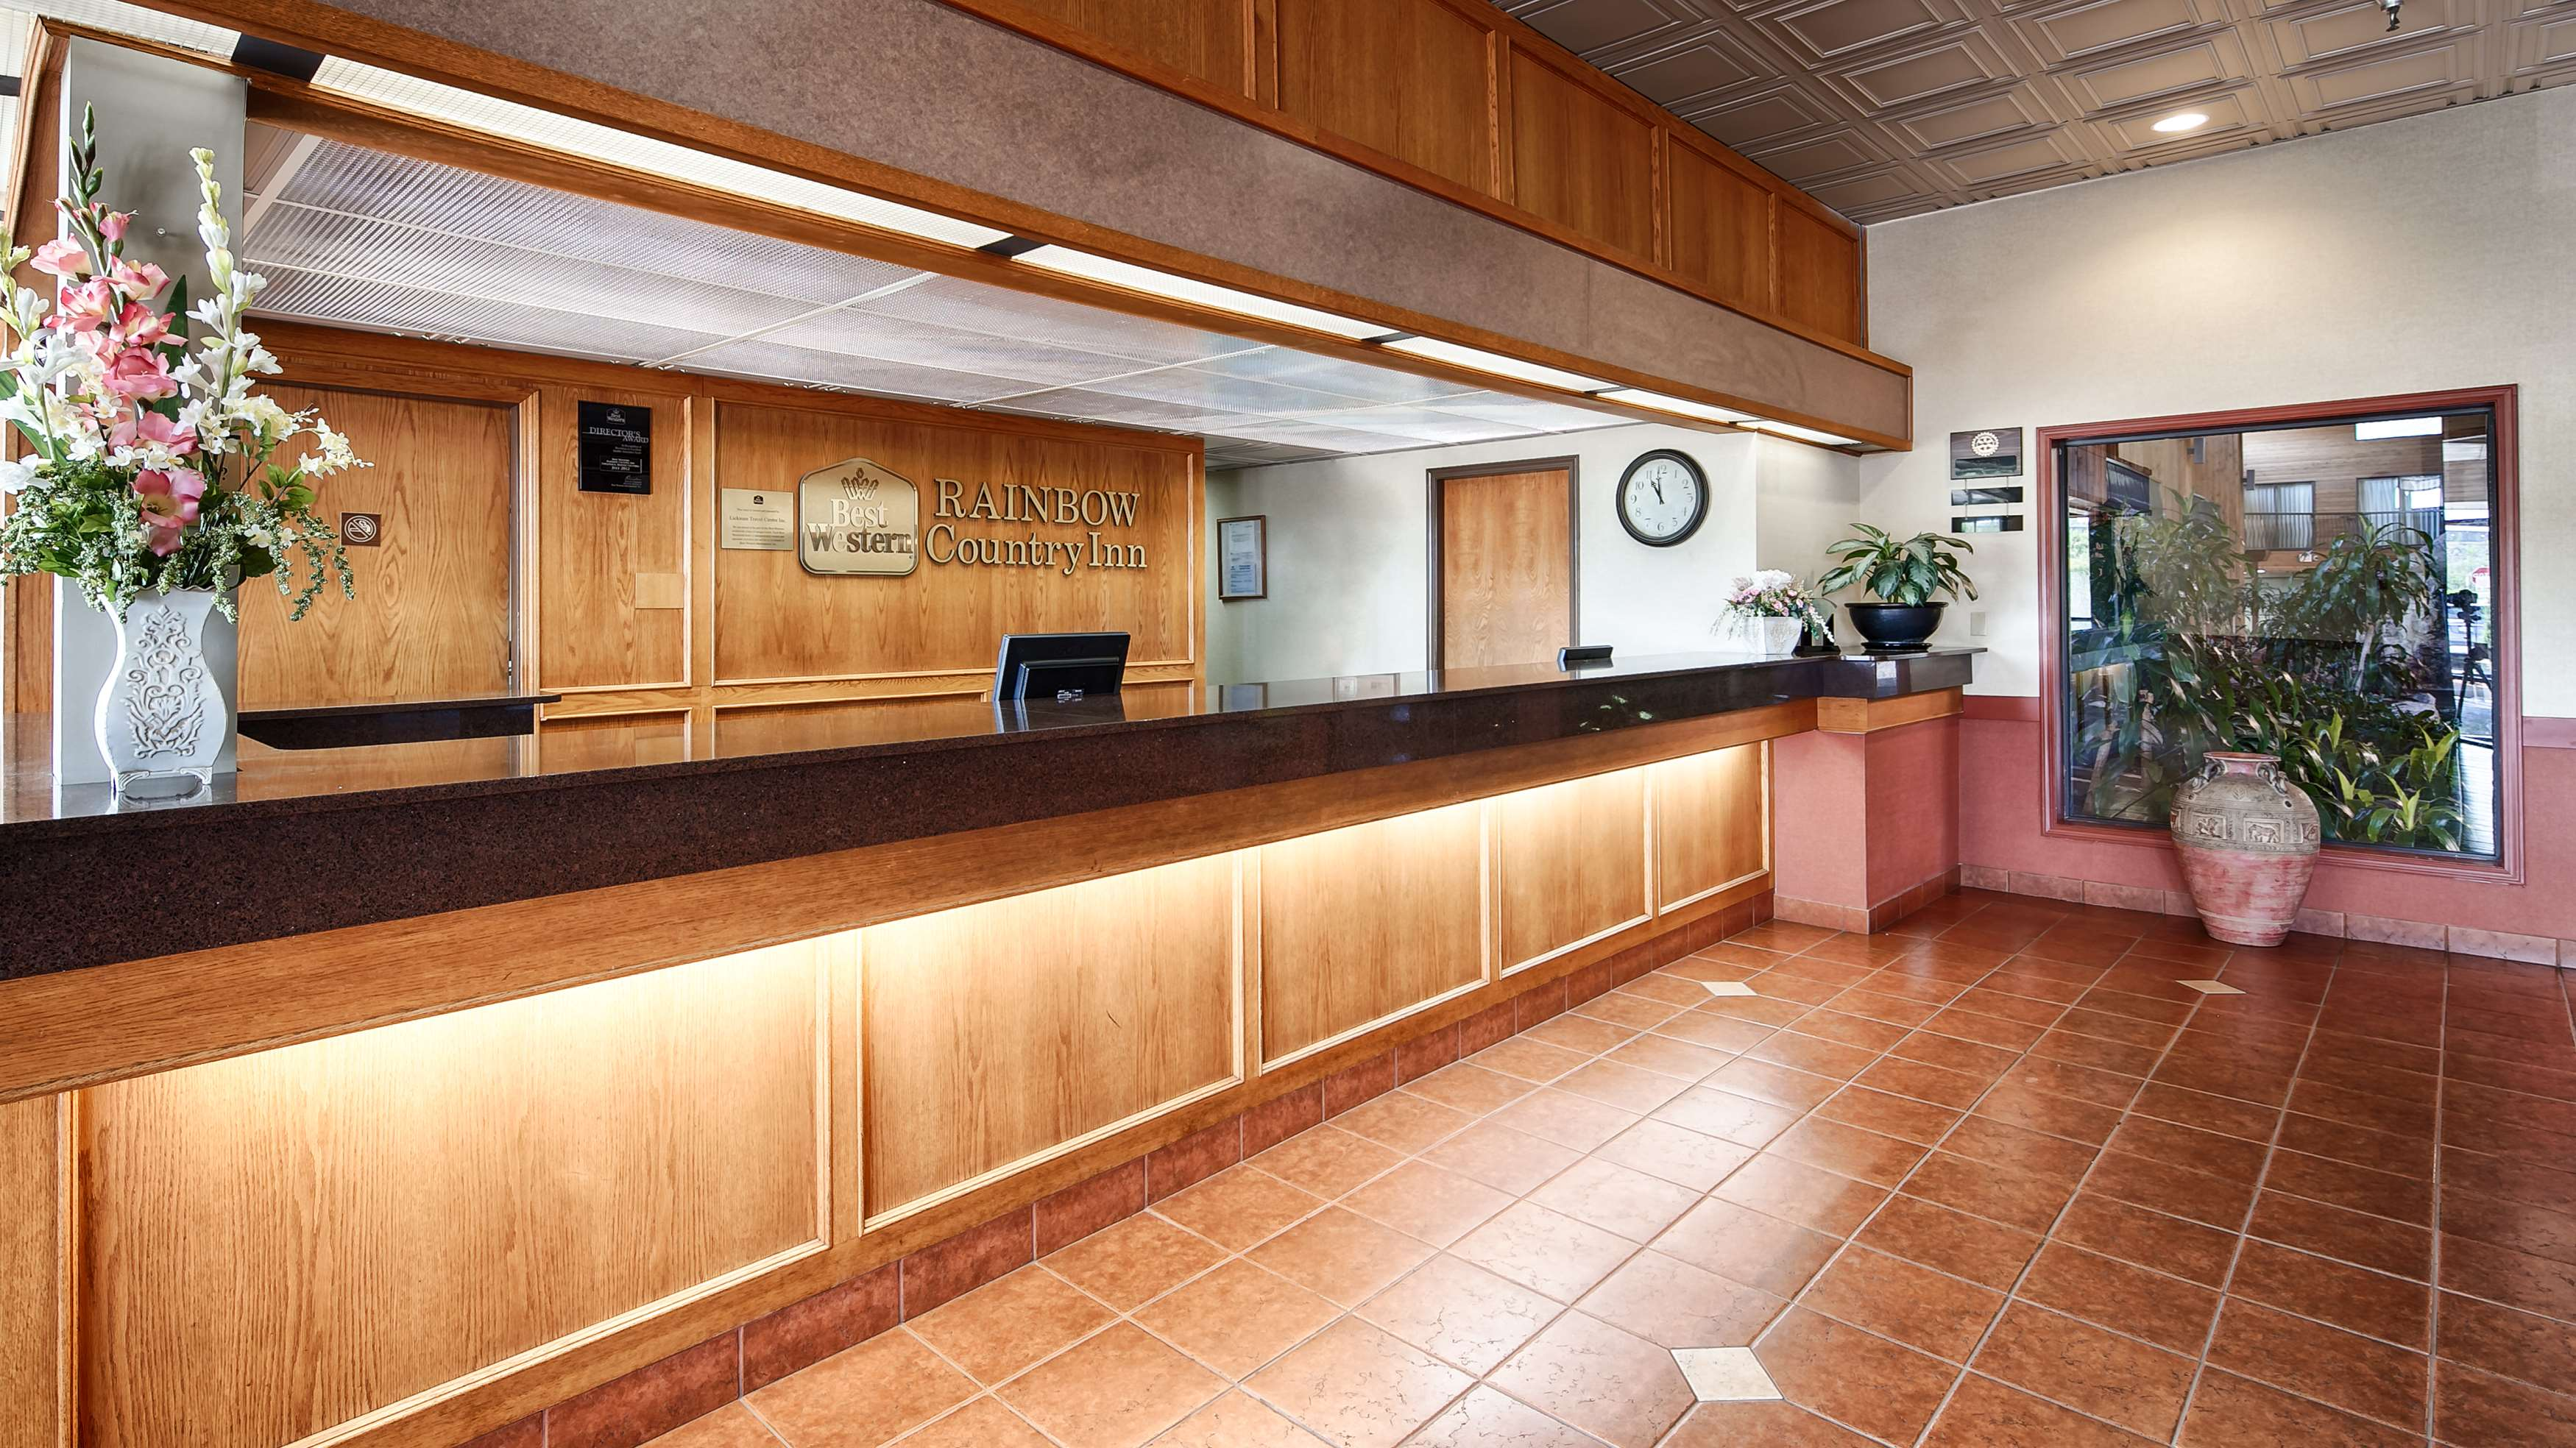 Best Western Rainbow Country Inn in Chilliwack: Lobby